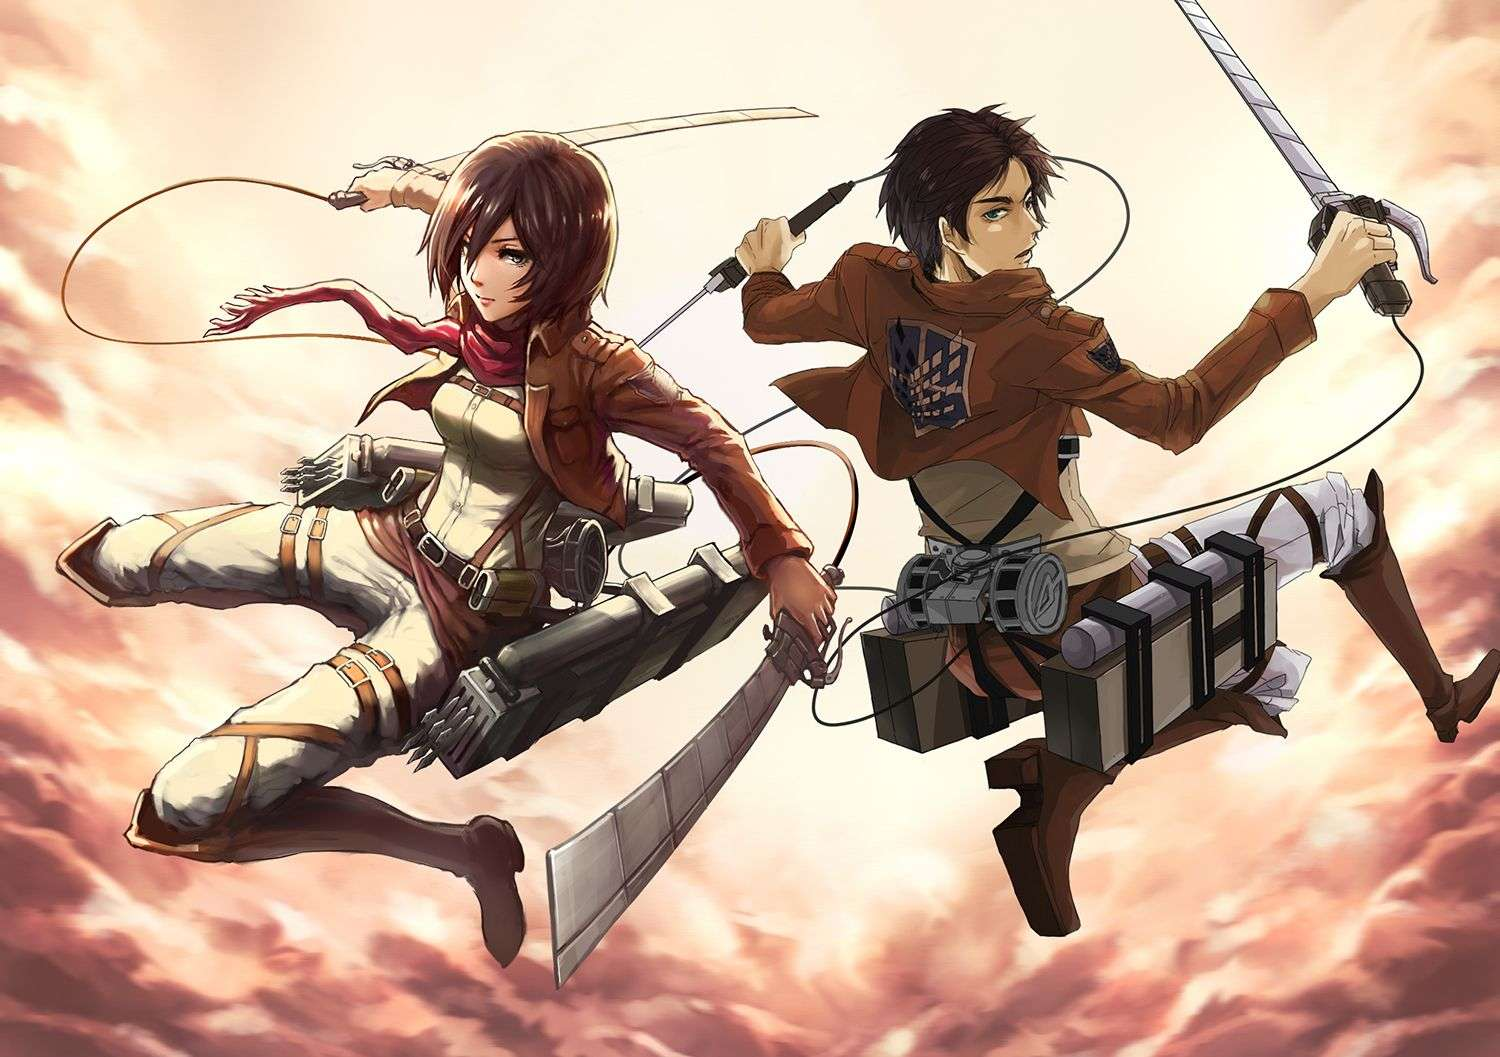 Attack On Titan Chapter 139 Ending Explained: Where to Read the Manga Online?